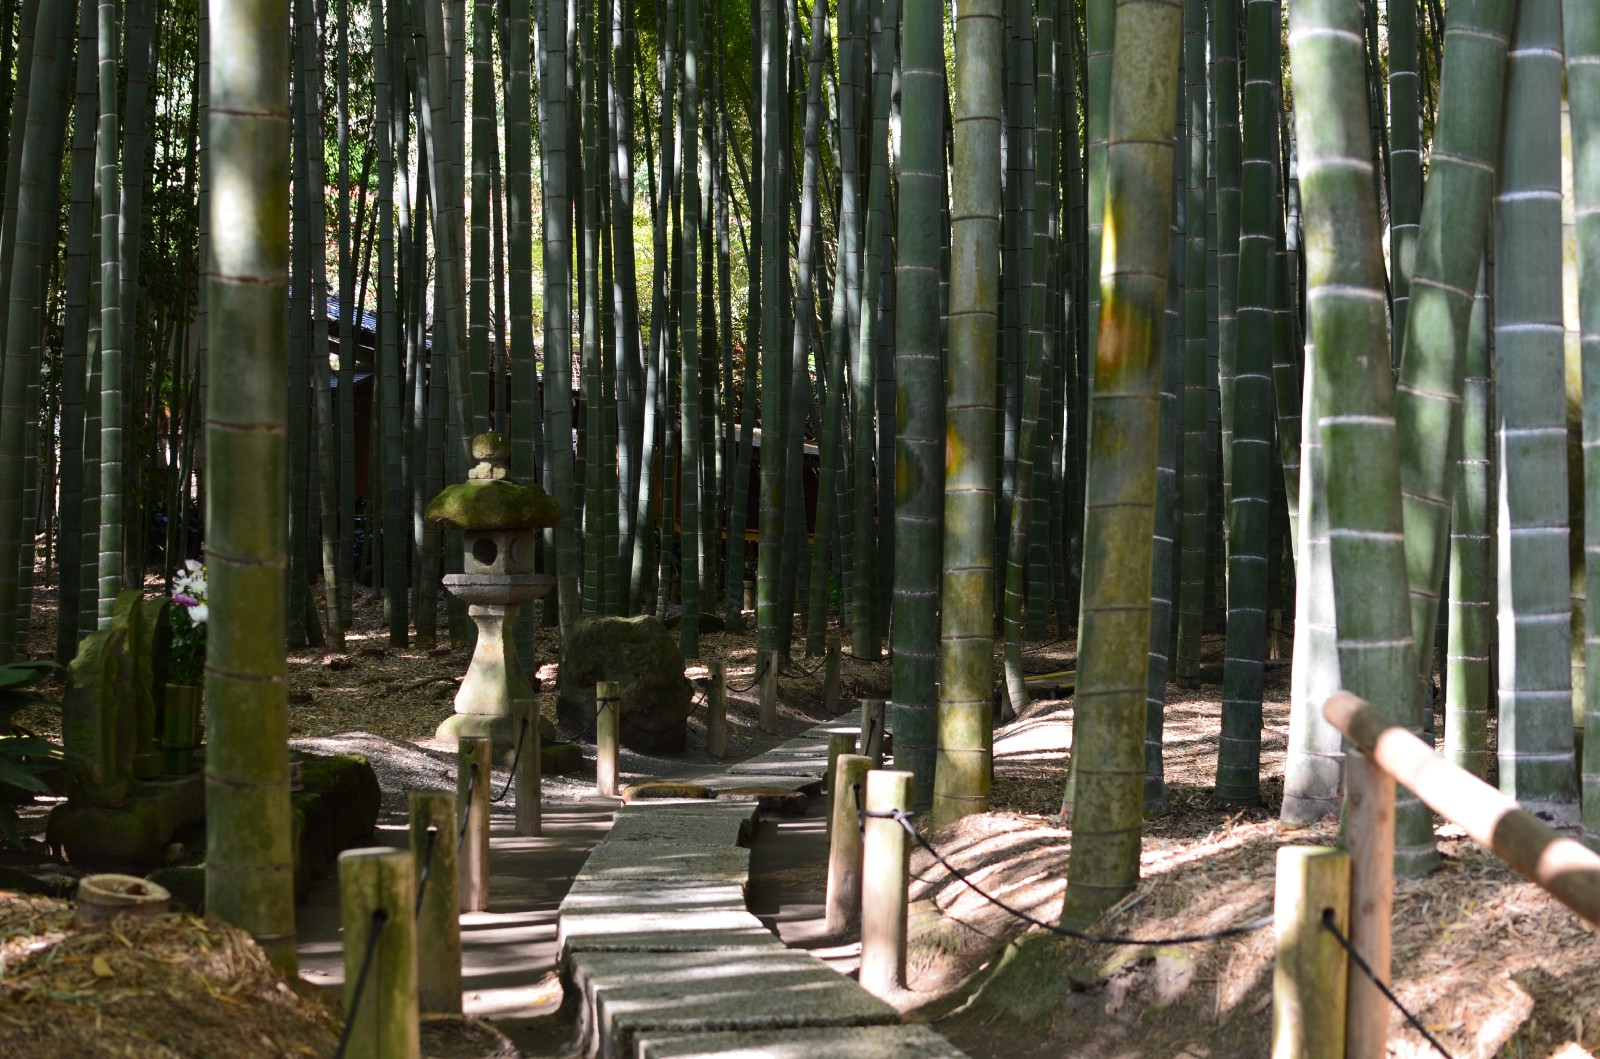 The pleasant path through the bamboo forest at Hokokuji Temple